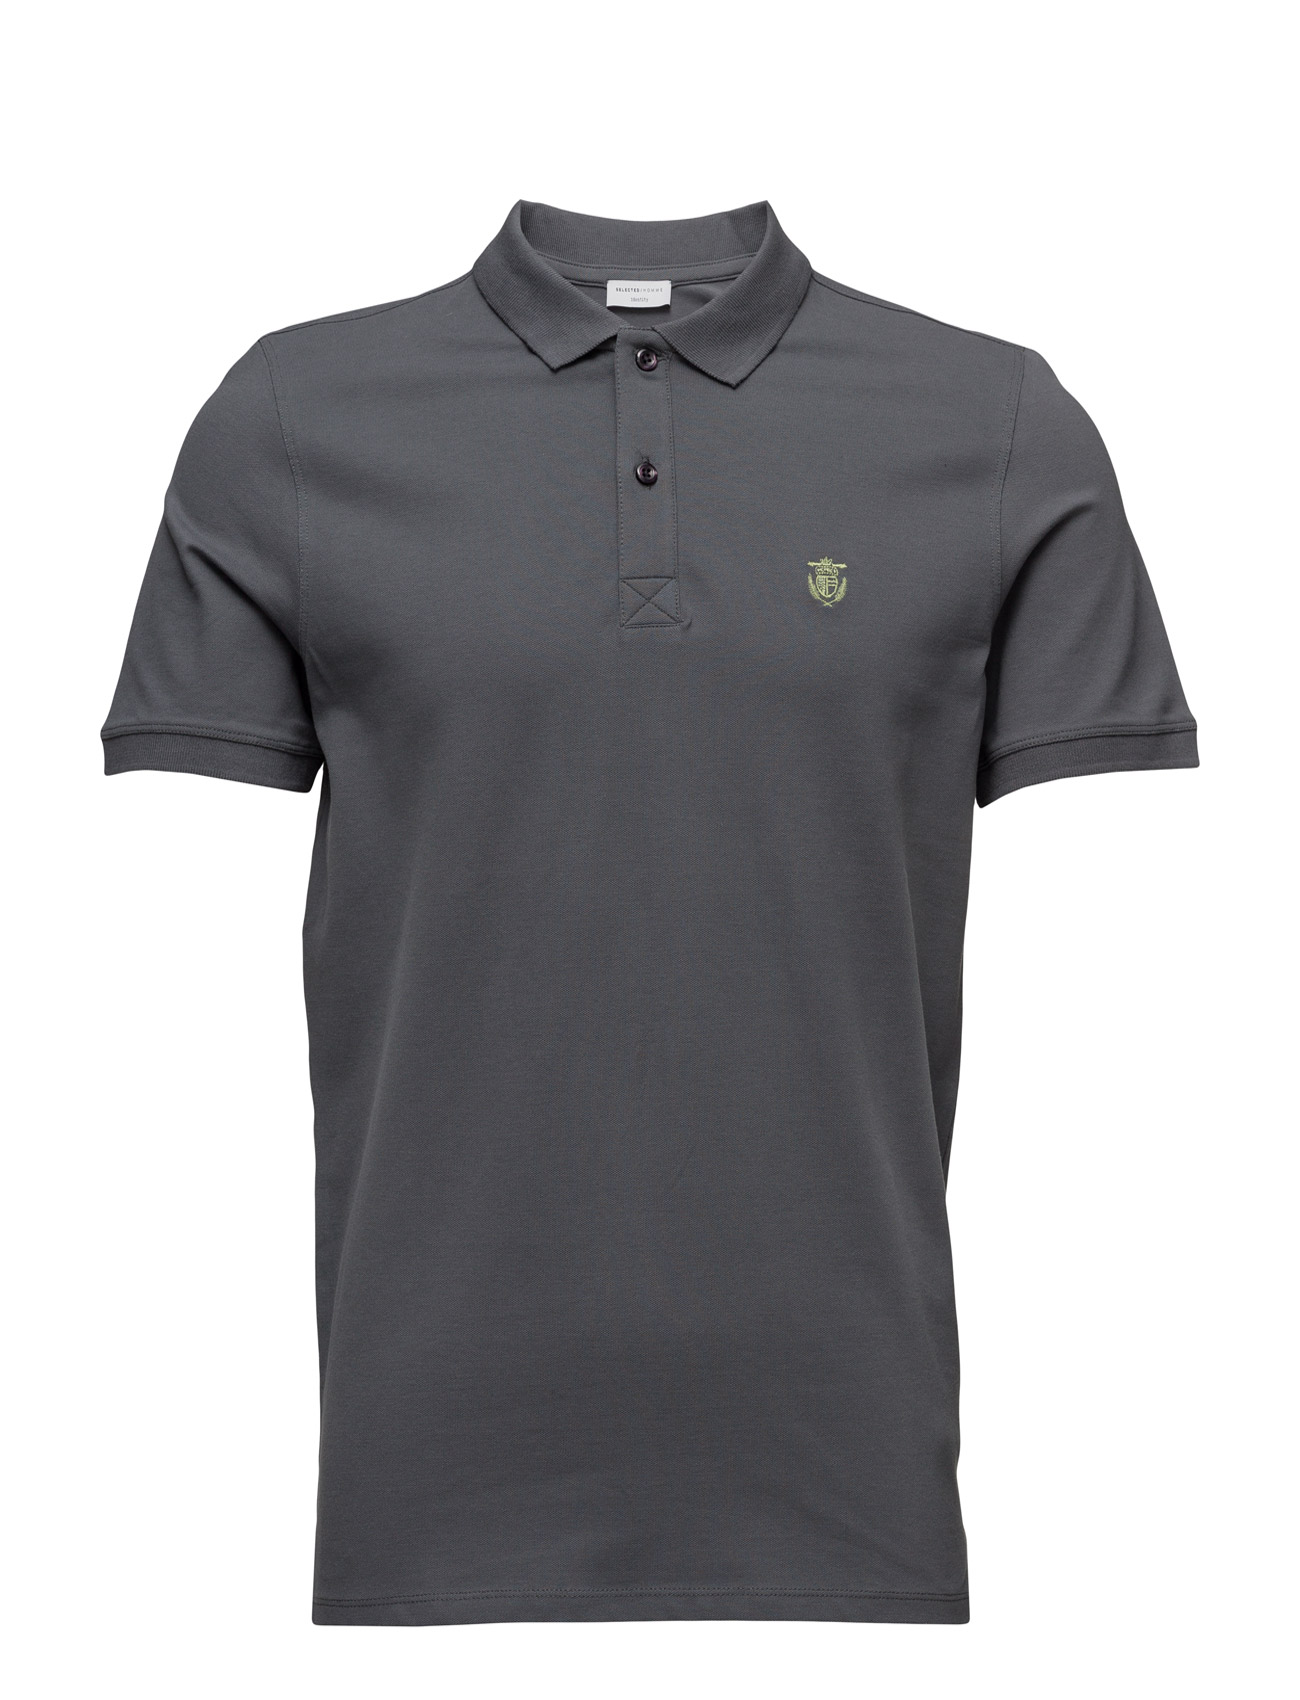 Shdaro Ss Embroidery Polo Noos Selected Homme Kortærmede polo t-shirts til Mænd i